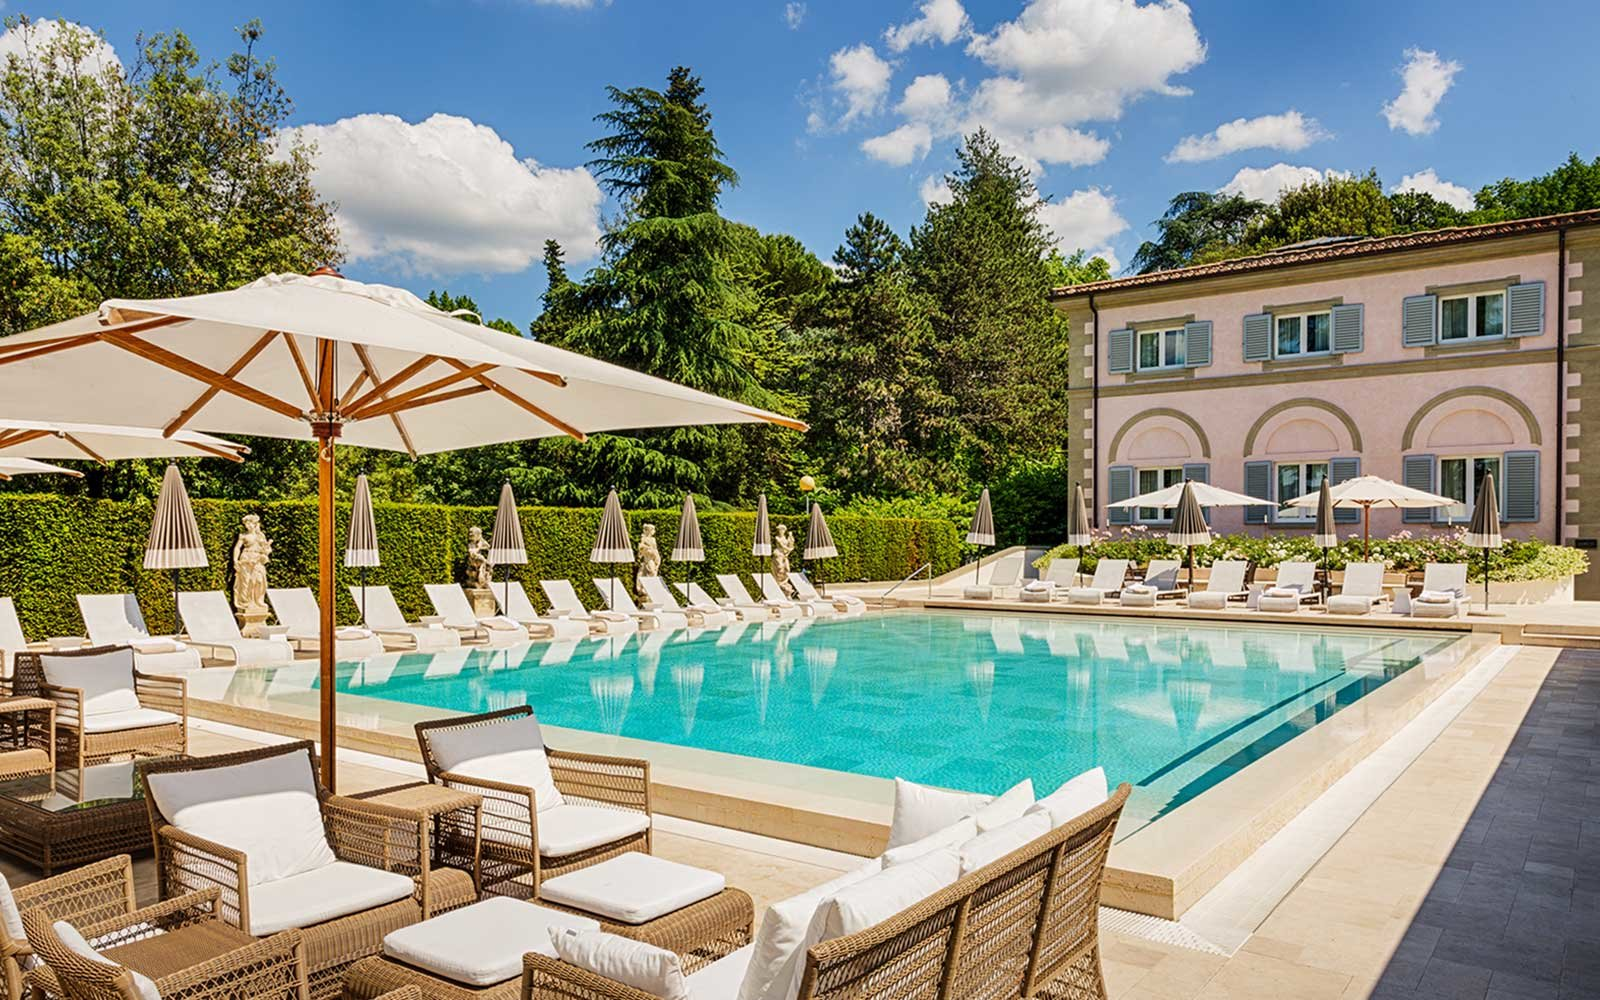 Villa Cora Hotel in Florence